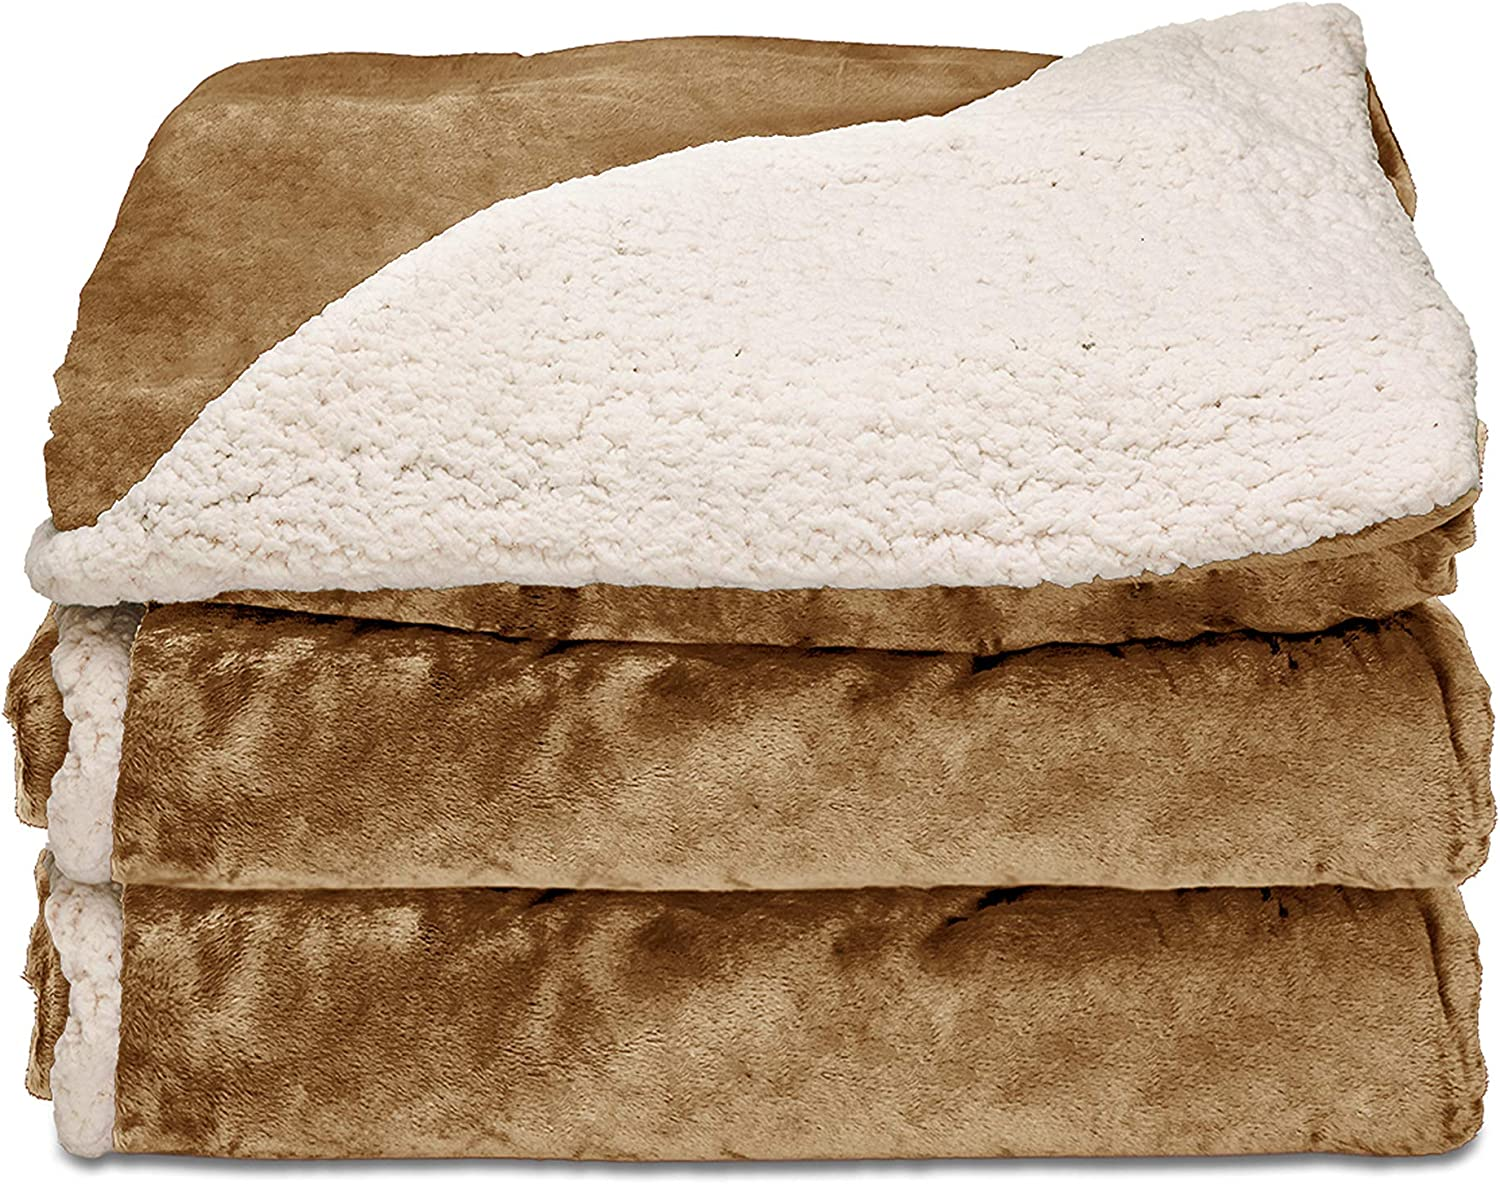 Sunbeam Heated Throw Blanket | Reversible Sherpa/Royal Mink, 3 Heat Settings